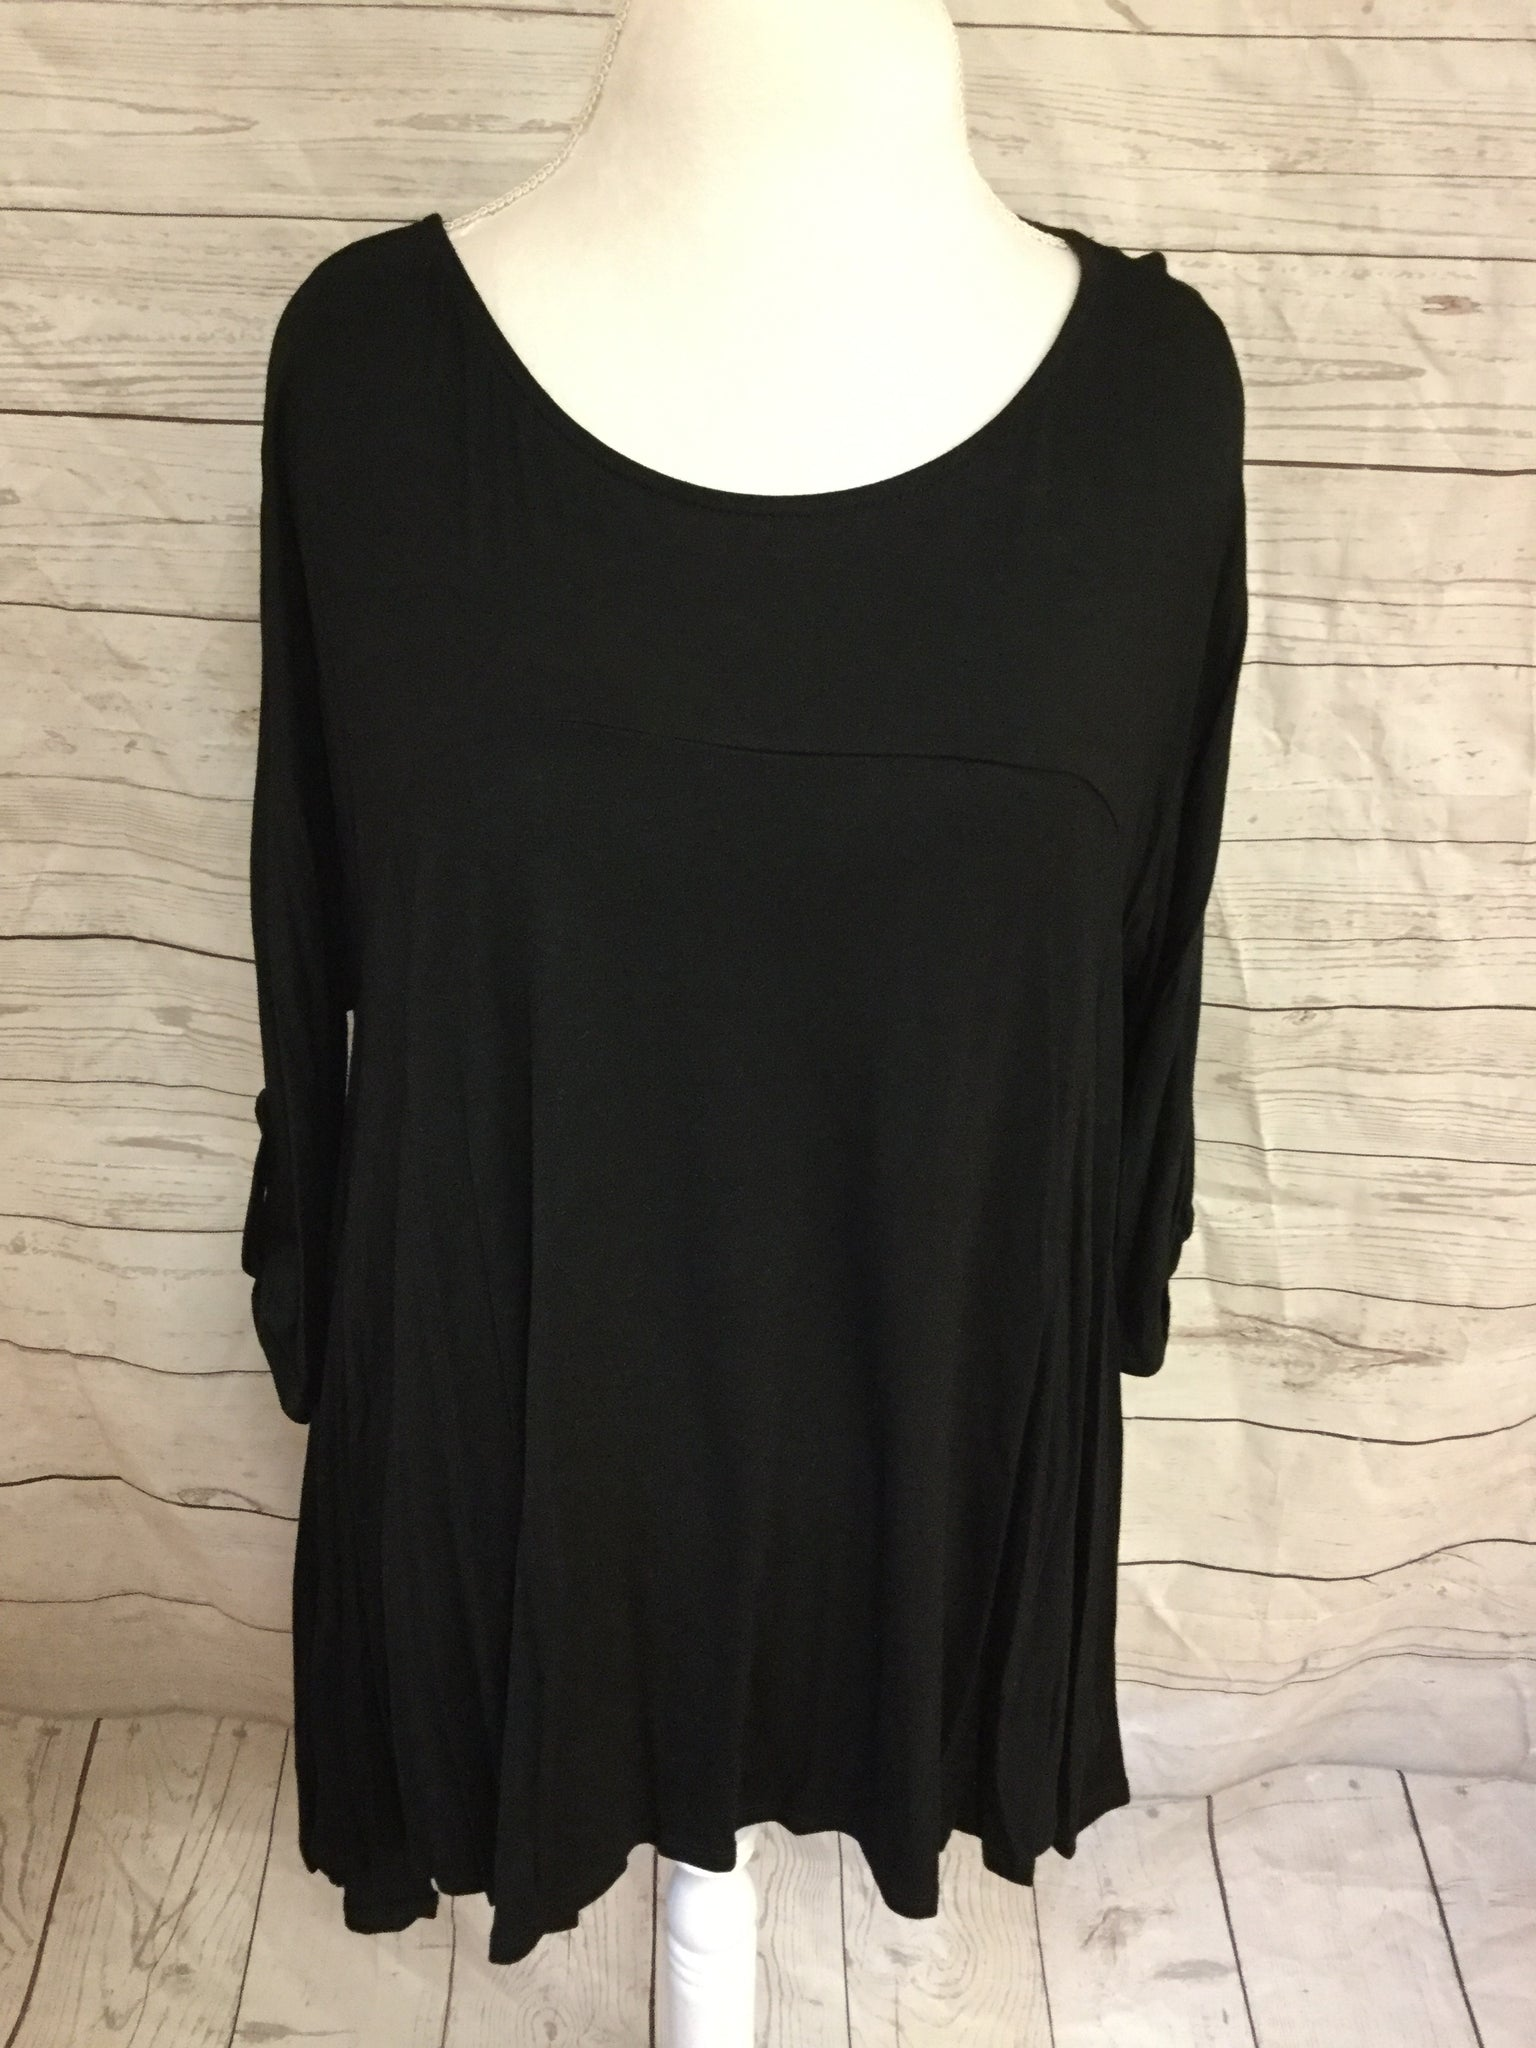 Button Up Sleeve with Lined Chest Black Tunic